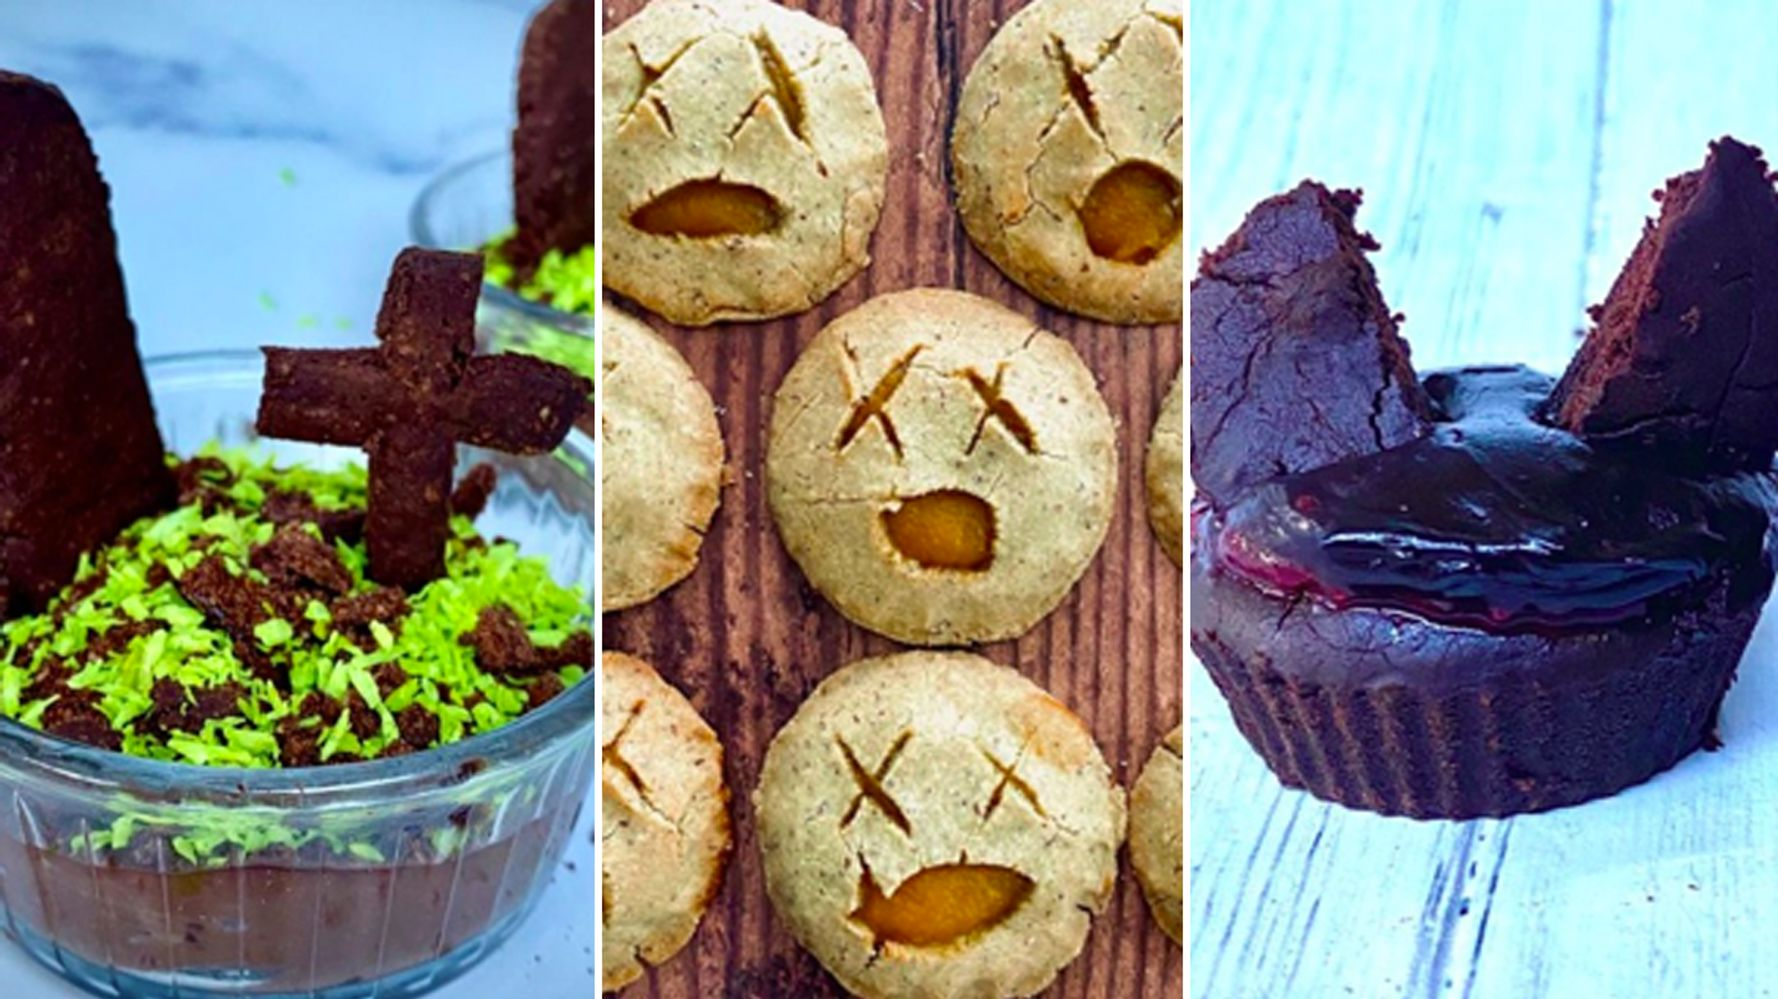 3 Spooky Bakes To Make With Kids That Are – Shhh! – Actually Healthy